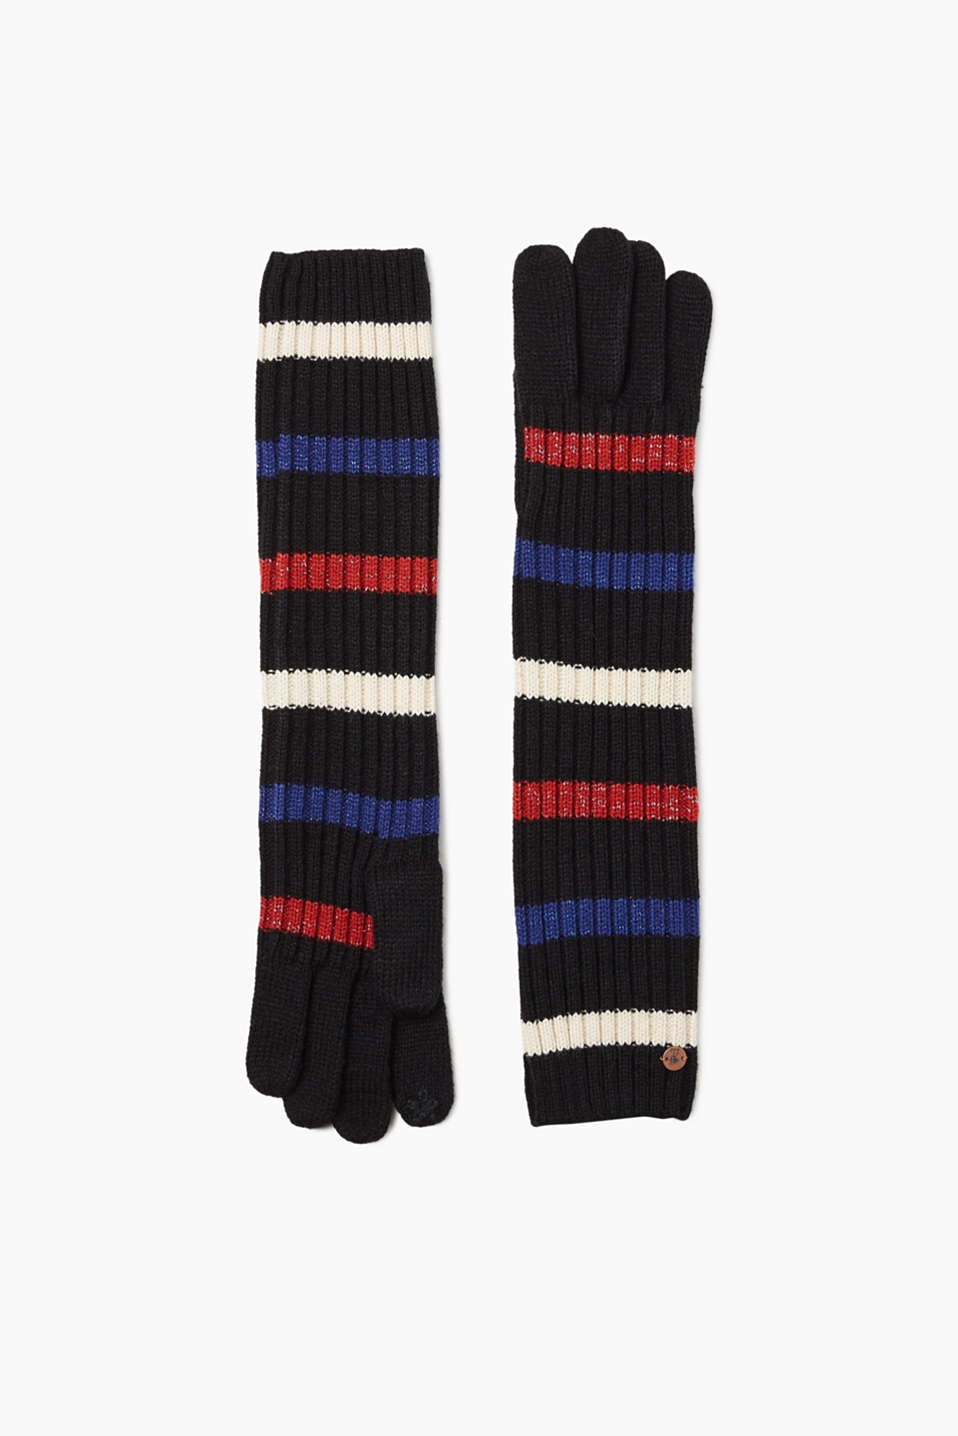 These touchscreen knitted gloves feature lurex stripes and are functional!